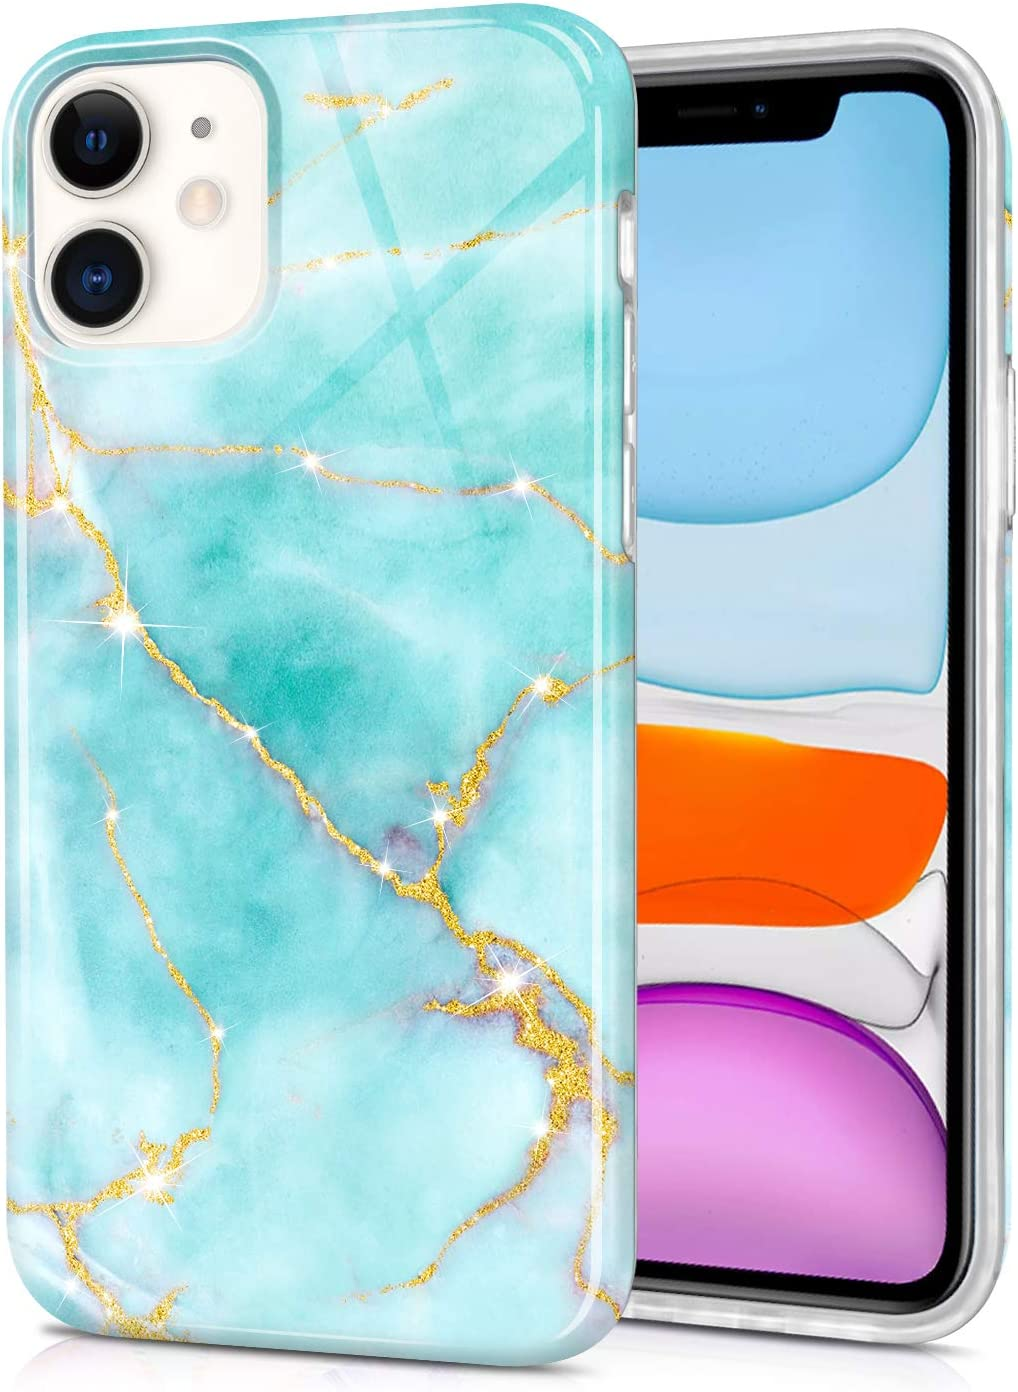 CAOUME Compatible with iPhone 11 Case (2019 Release) Light Green Marble Design Gold Sparkly Glitter Protective Stylish Slim Thin Cute Cases for Apple Phone (6.1